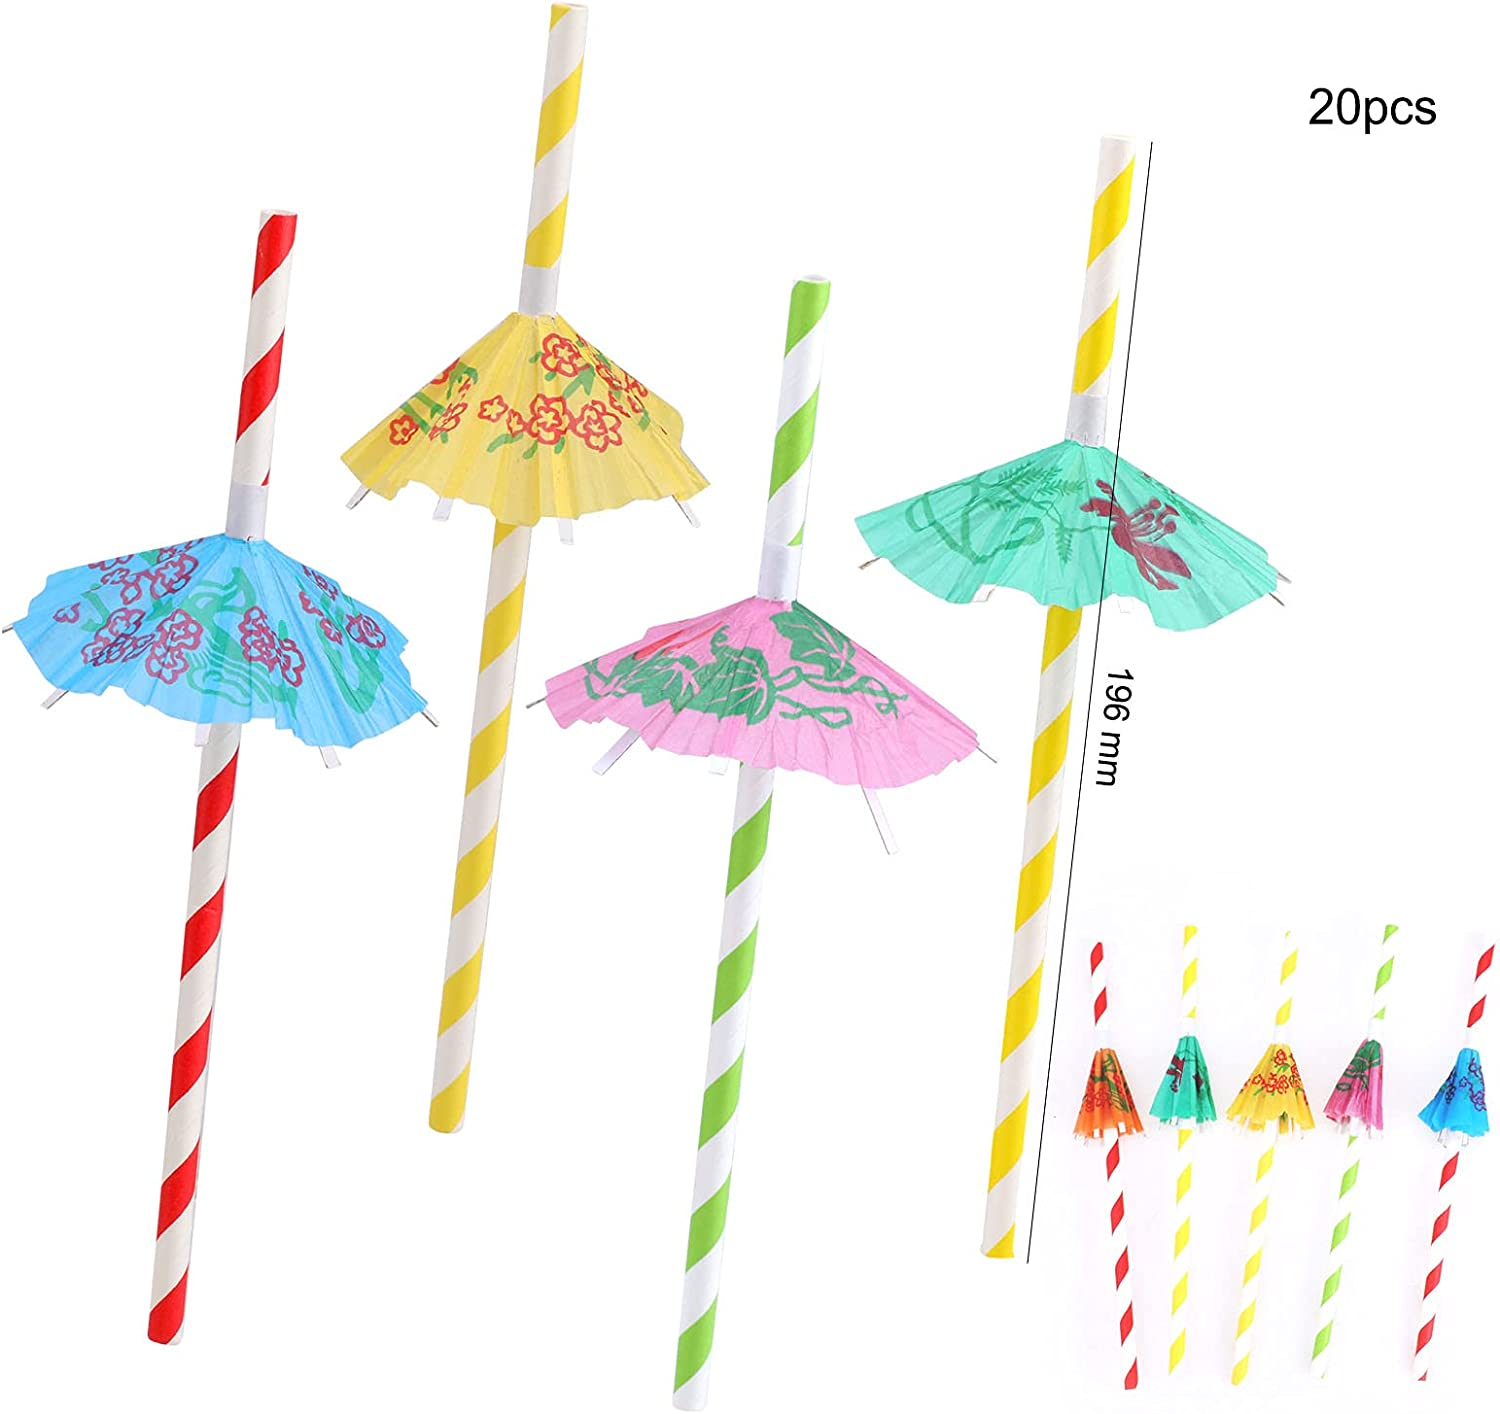 HOWAF 150Pcs Cocktail Party Decorations,Cocktail Fruit Label,Swizzle Sticks Paper Umbrella Sticks,Straws for Drinks Summer Party Drink Decorations Hawaii Tropical Party Decoration Cocktail Accessories